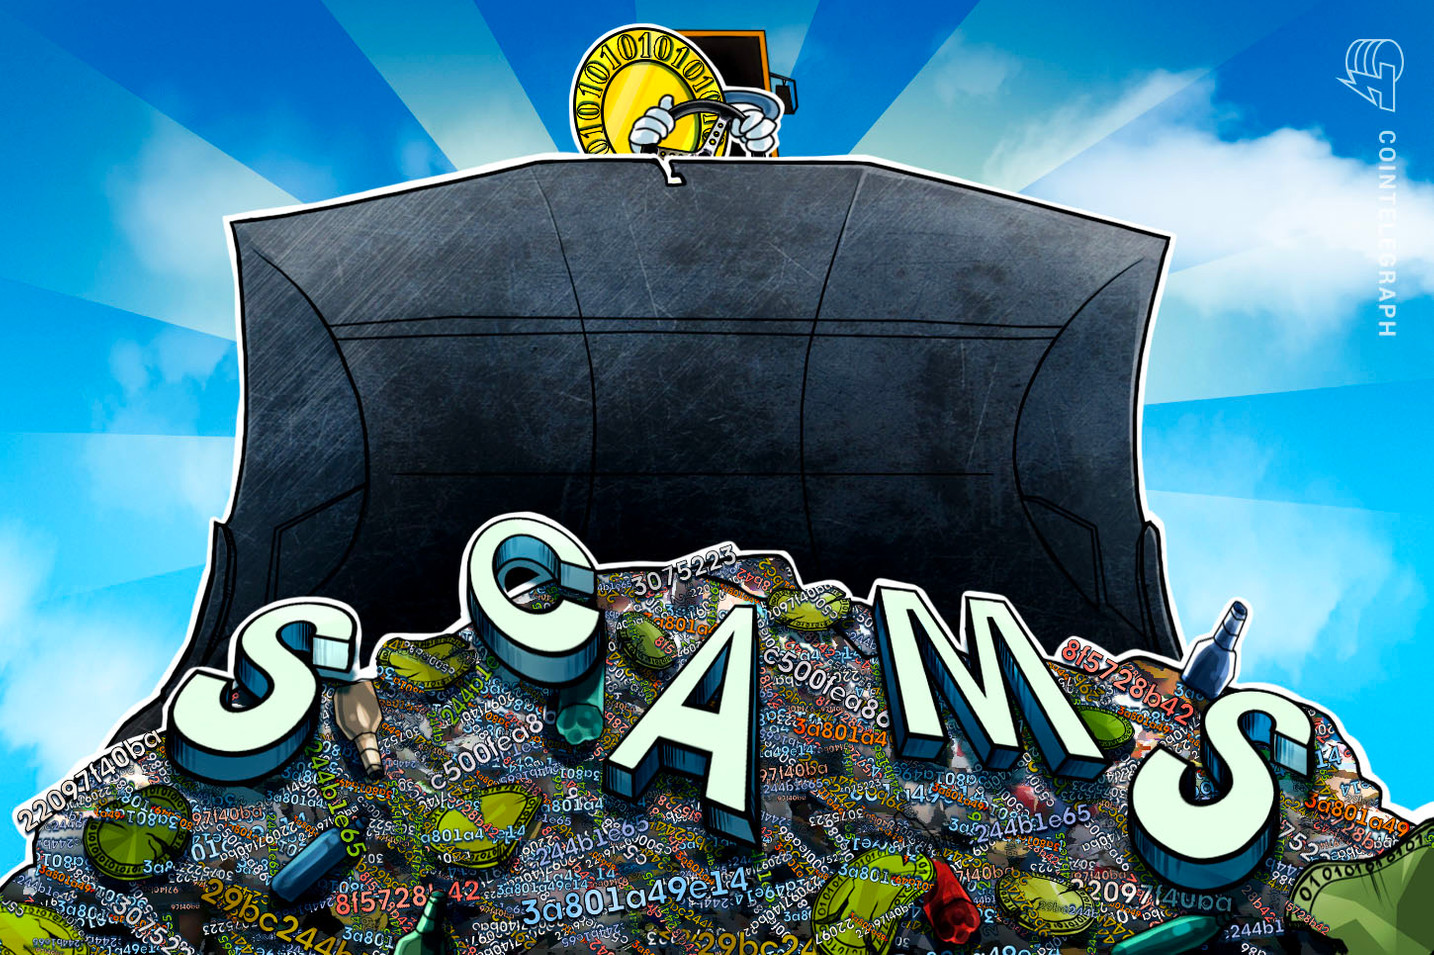 India: Senior Opposition Member Demands Probe Into 'Mega Bitcoin Scam'